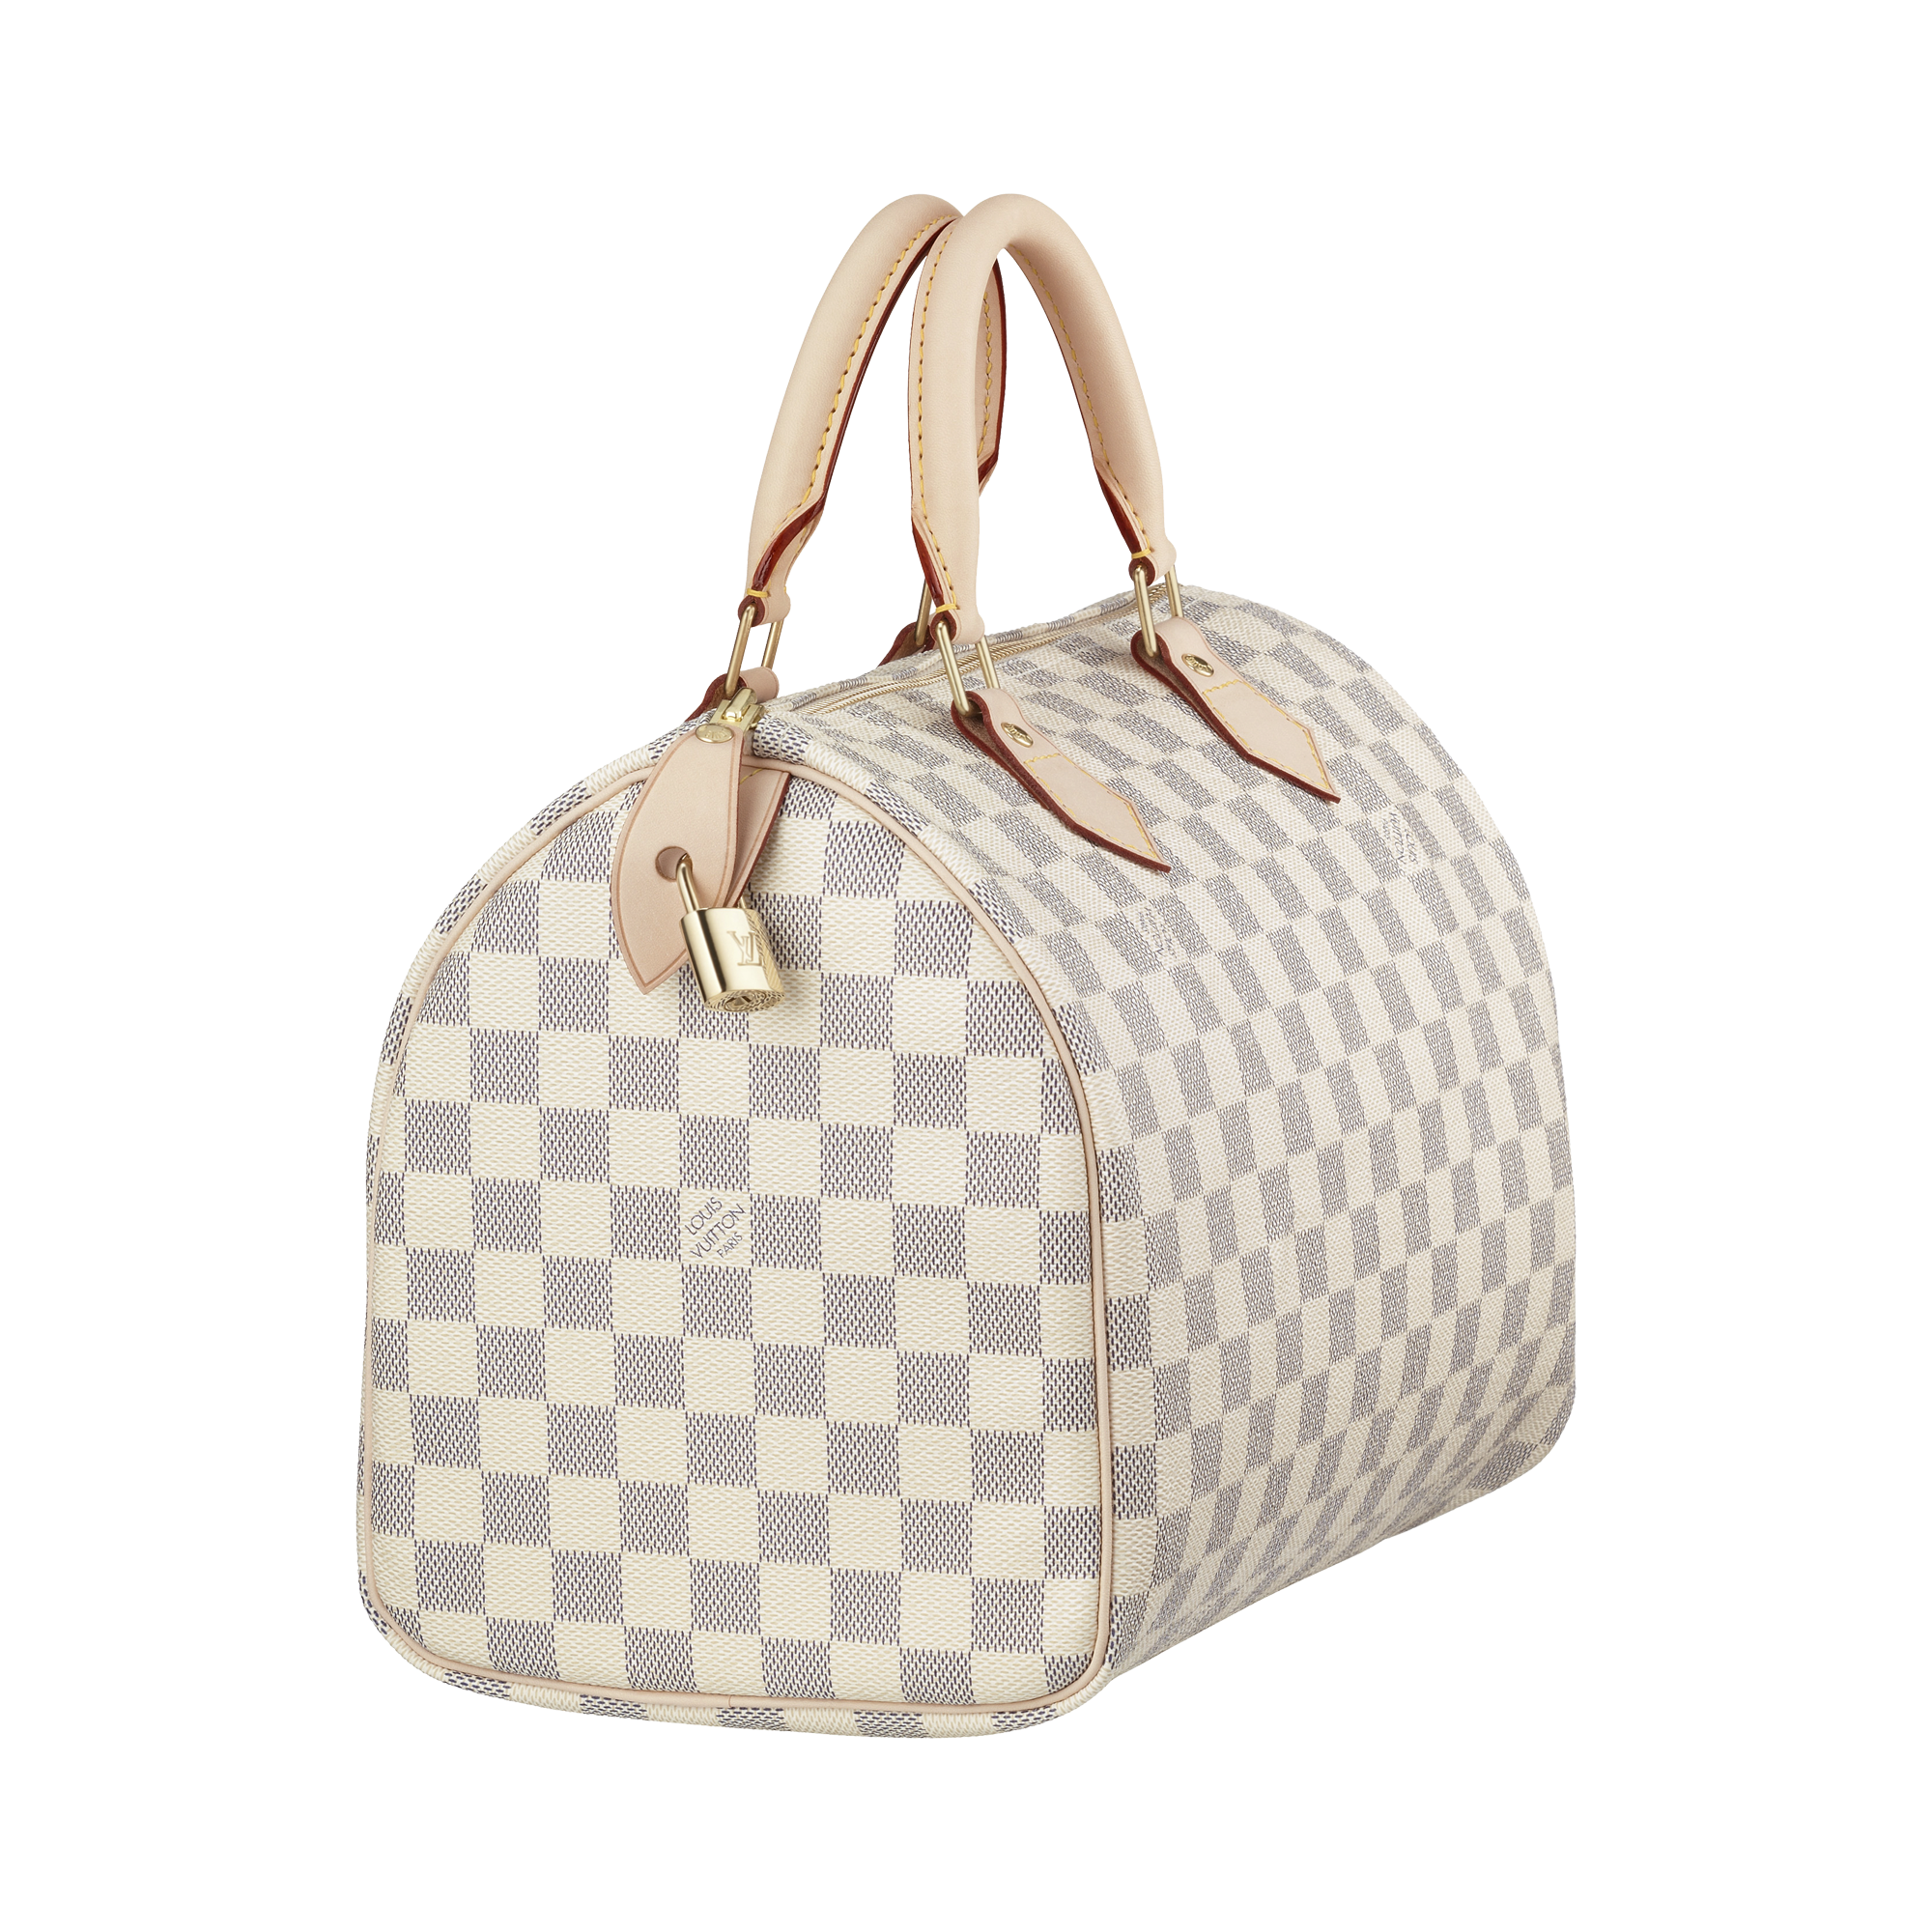 Purse PNG Pic - Purse PNG